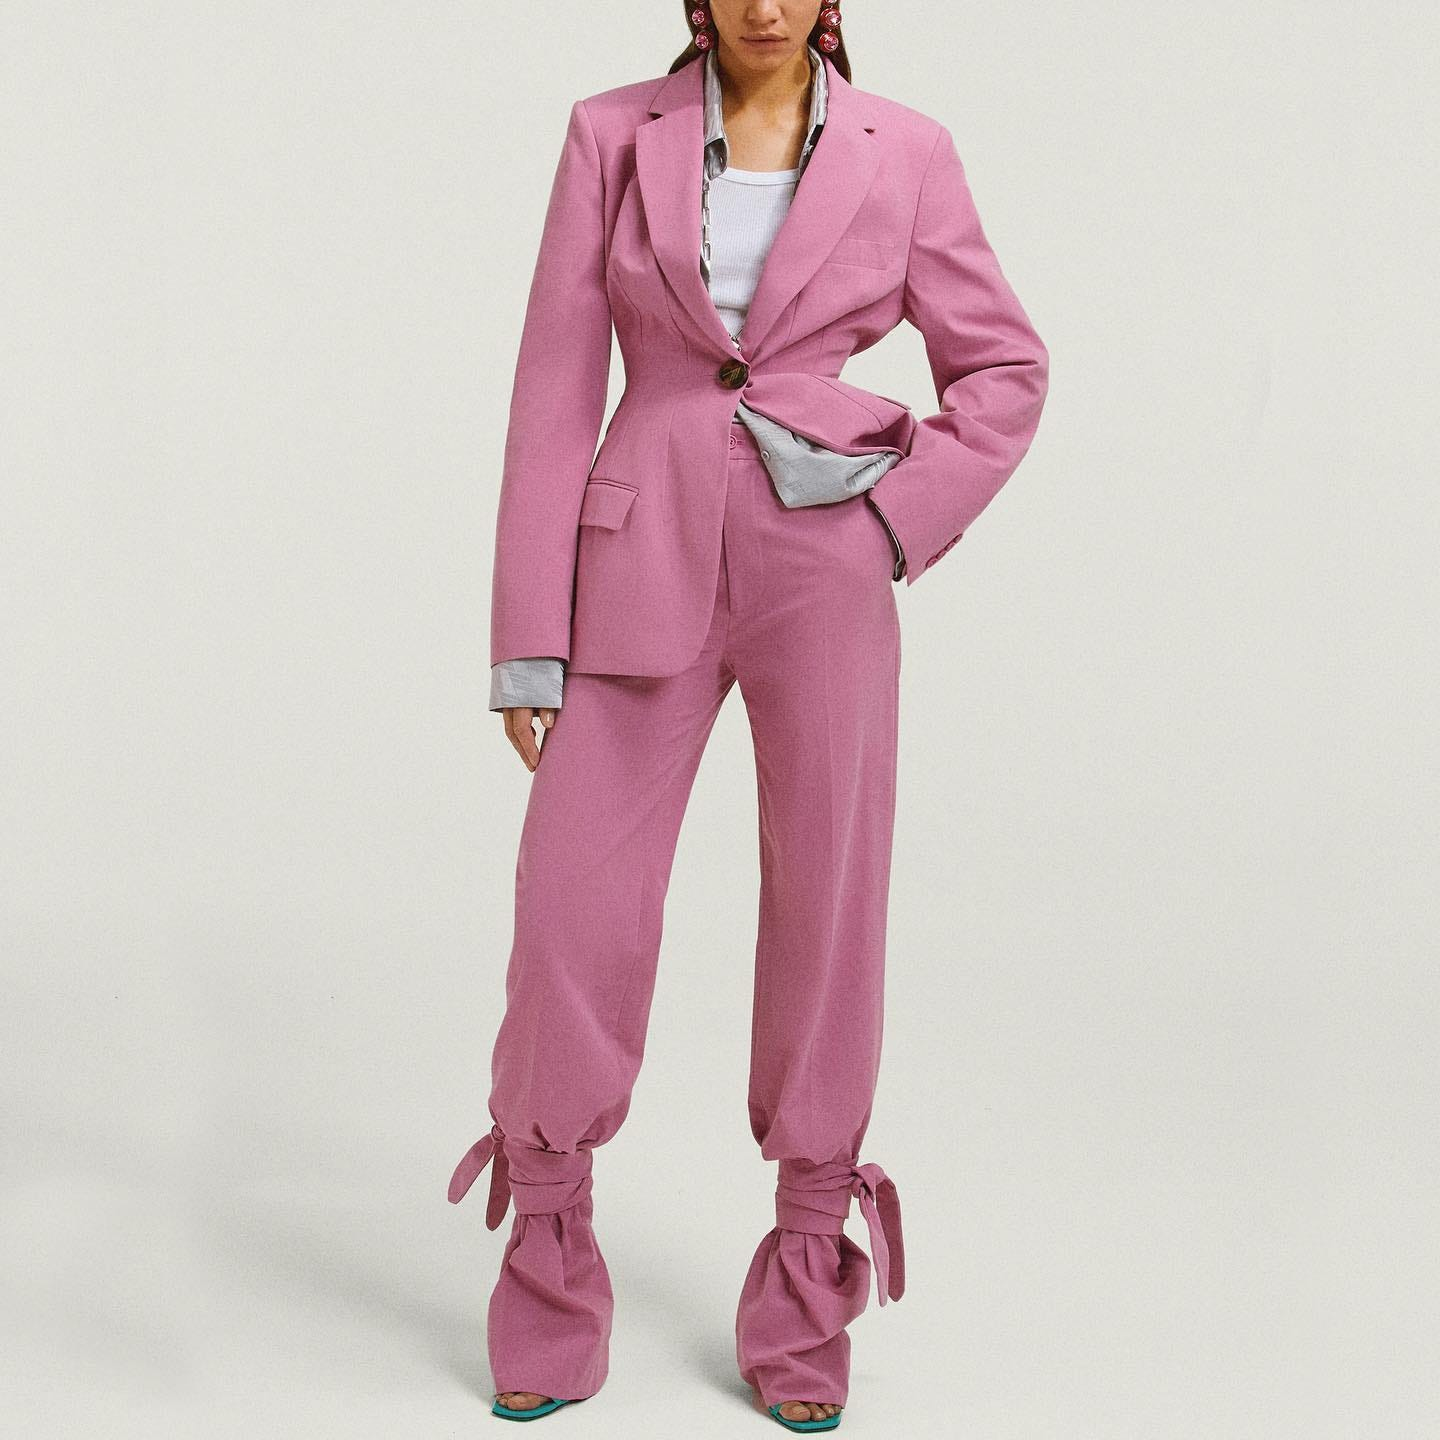 A sensual take @genteroma @the_attico   The Attico Donna orchid pink jacket and pants available on genteroma.com and in store at Via Frattina, 93.   #GenteRoma #TheAttico #FW20